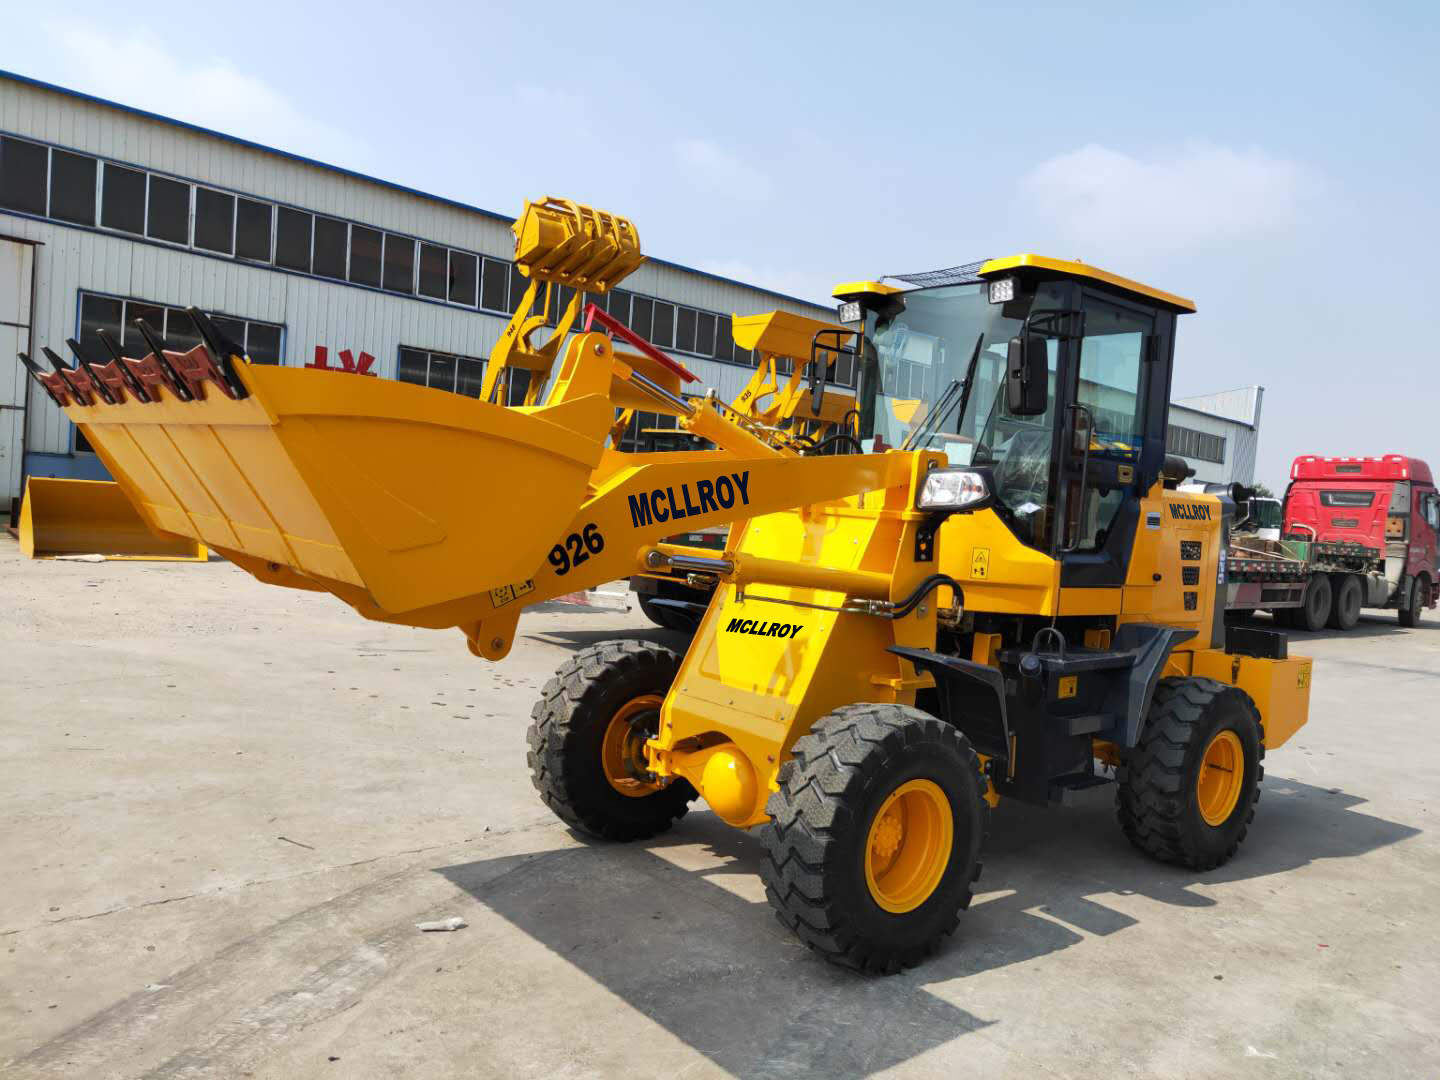 mais recente caso da empresa sobre 6 grupos MC926 Mini Wheel Loaders Delivered To as Filipinas